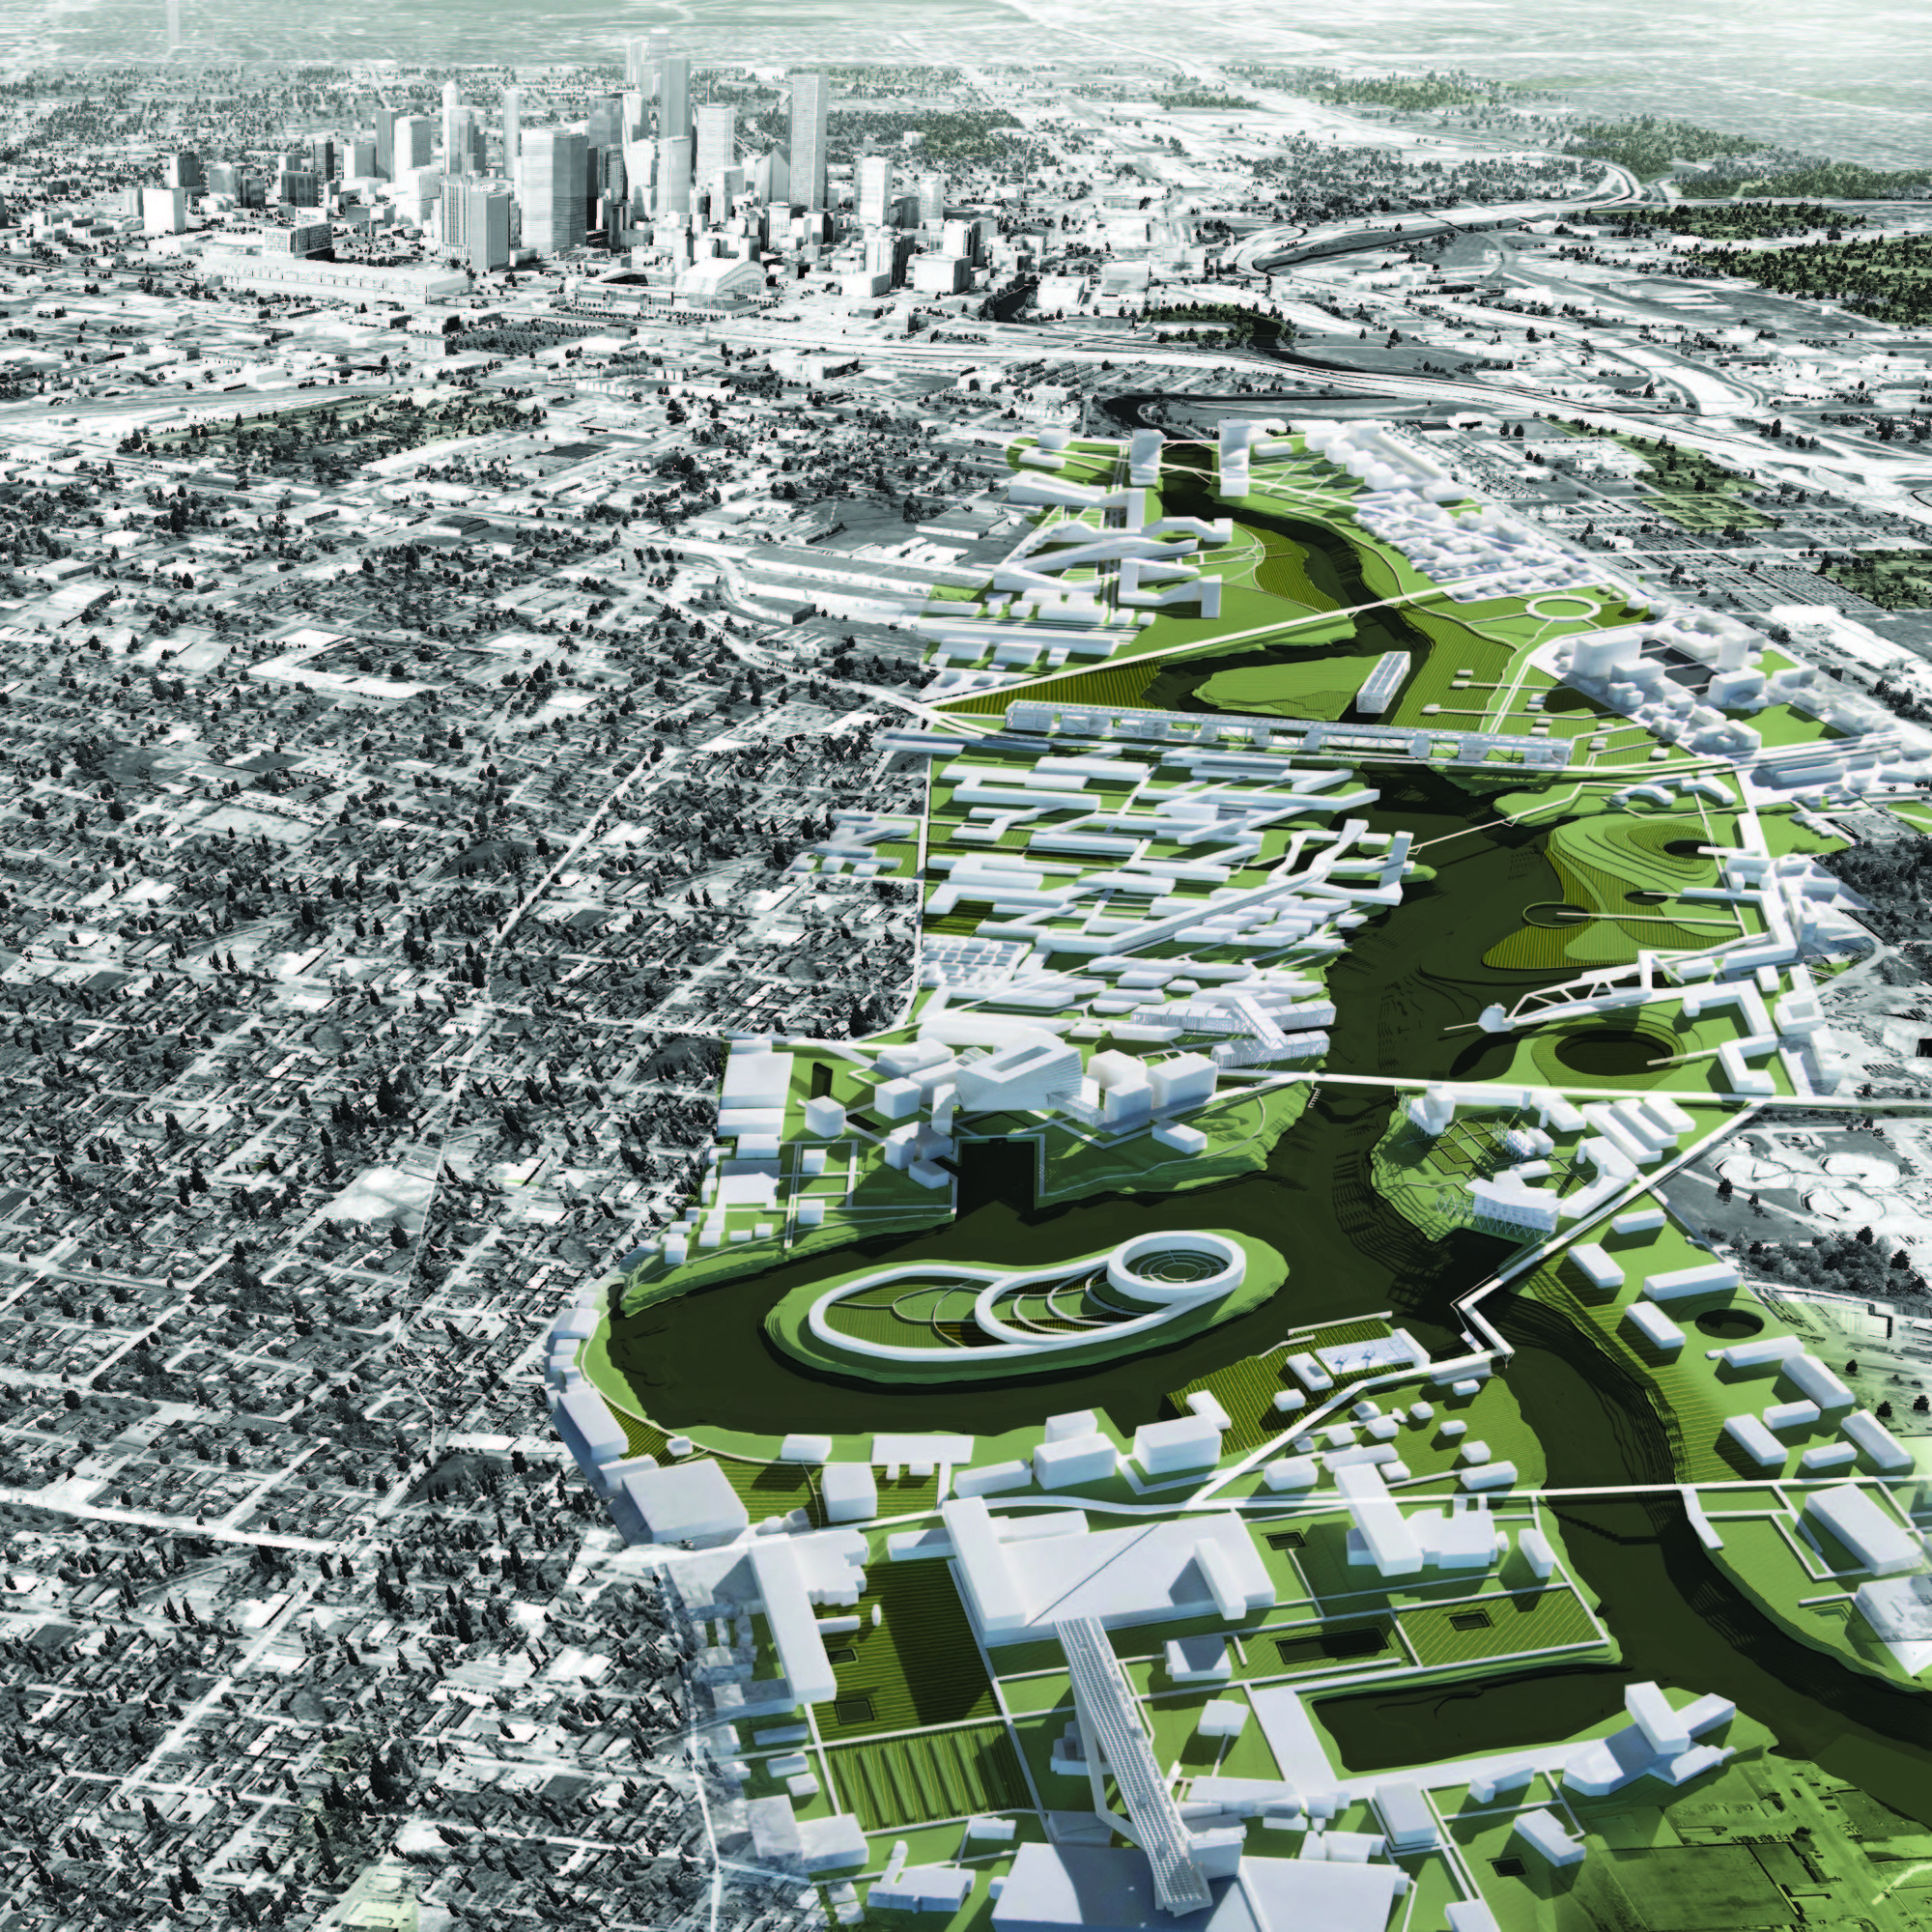 Landscape Architect Houston A Walk Along The Bayou An Award Winning Proposal Aims To Reinvent Houston S River